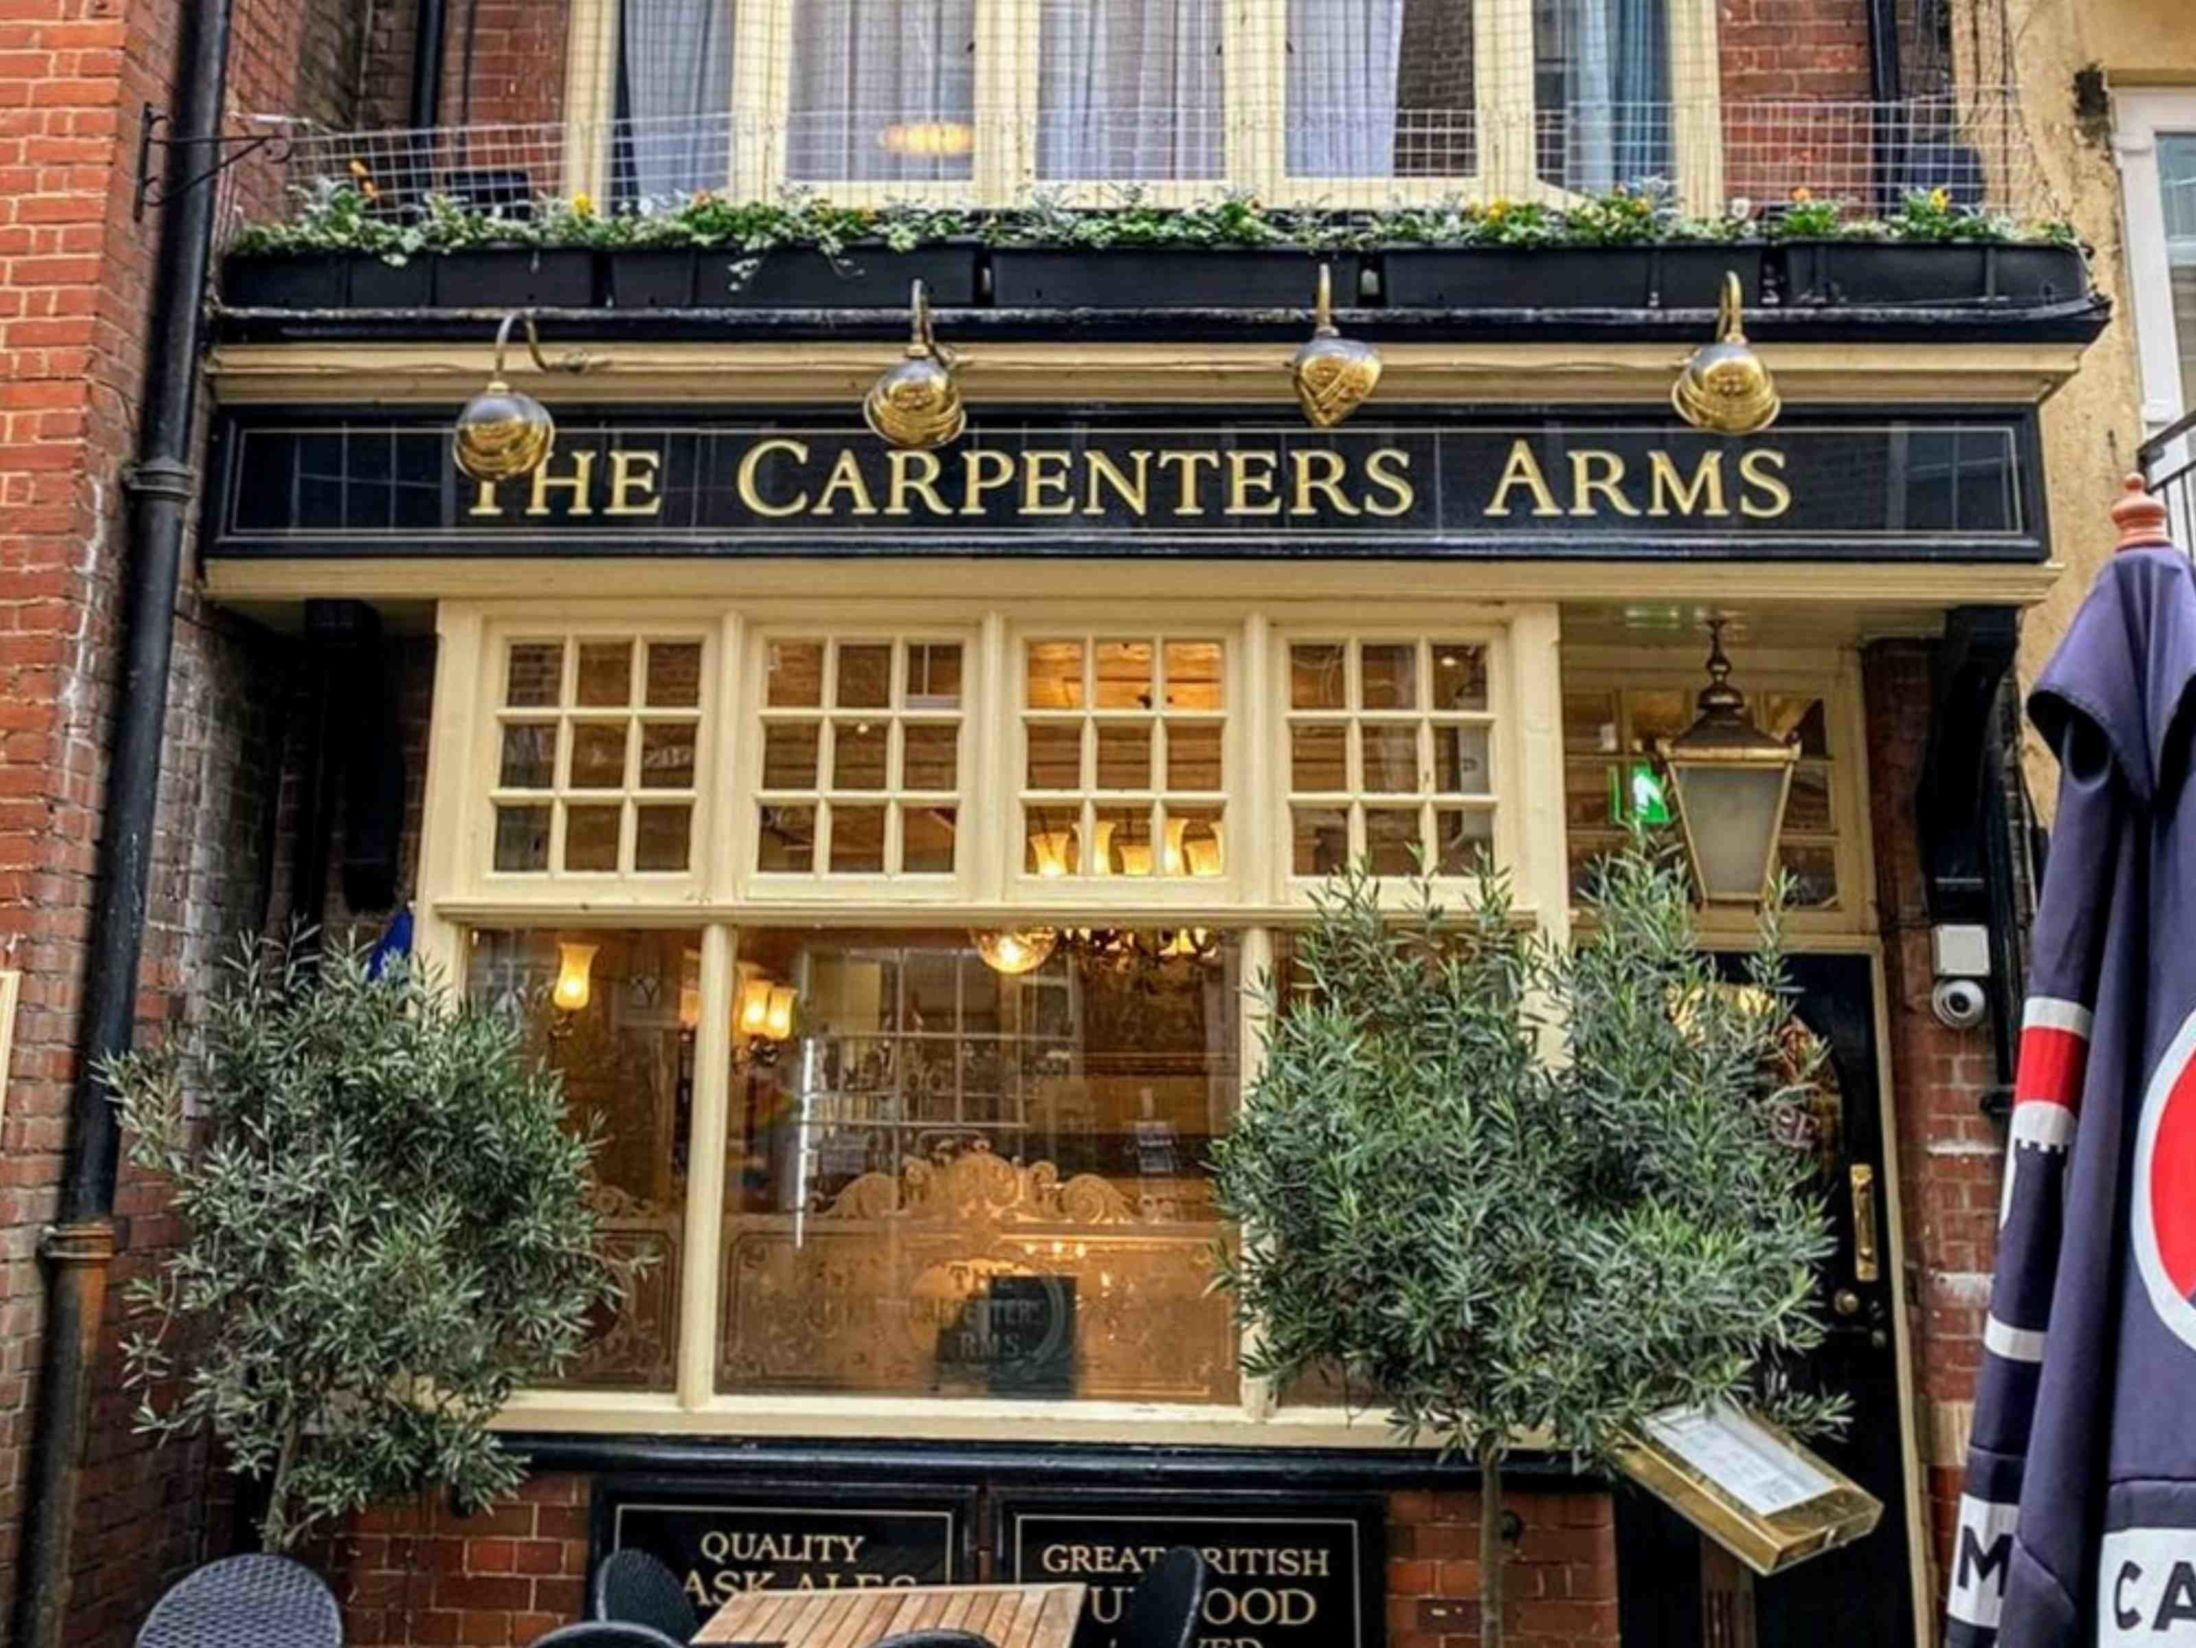 Best Pubs in Windsor - The Carpenters Arms